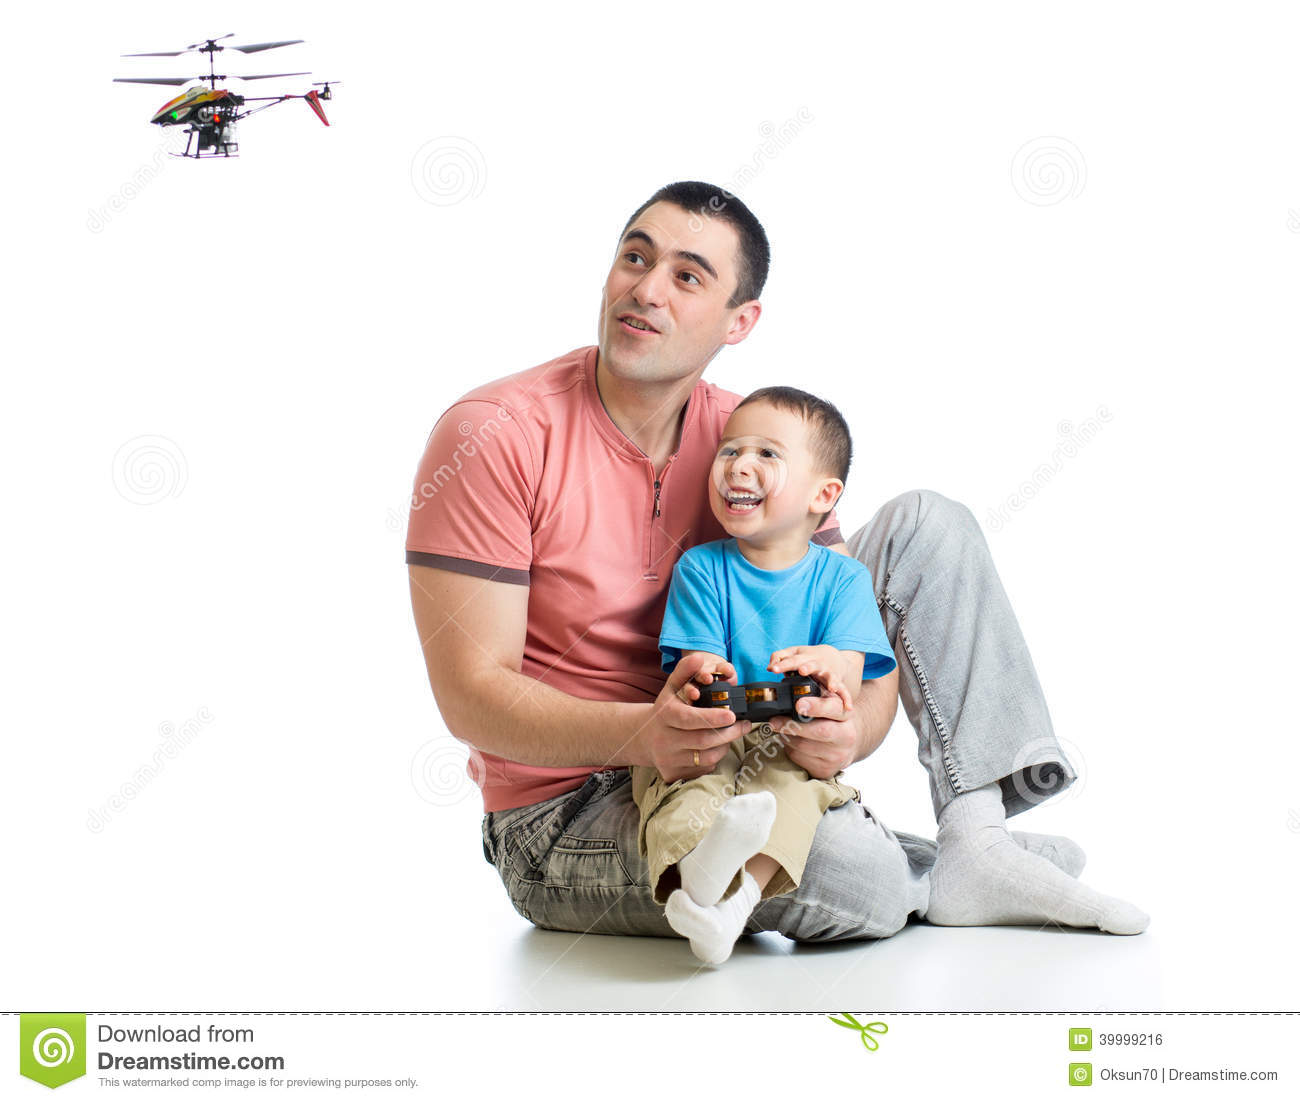 Boy Toys For Dads : Father and kid playing with rc helicopter toy stock photo